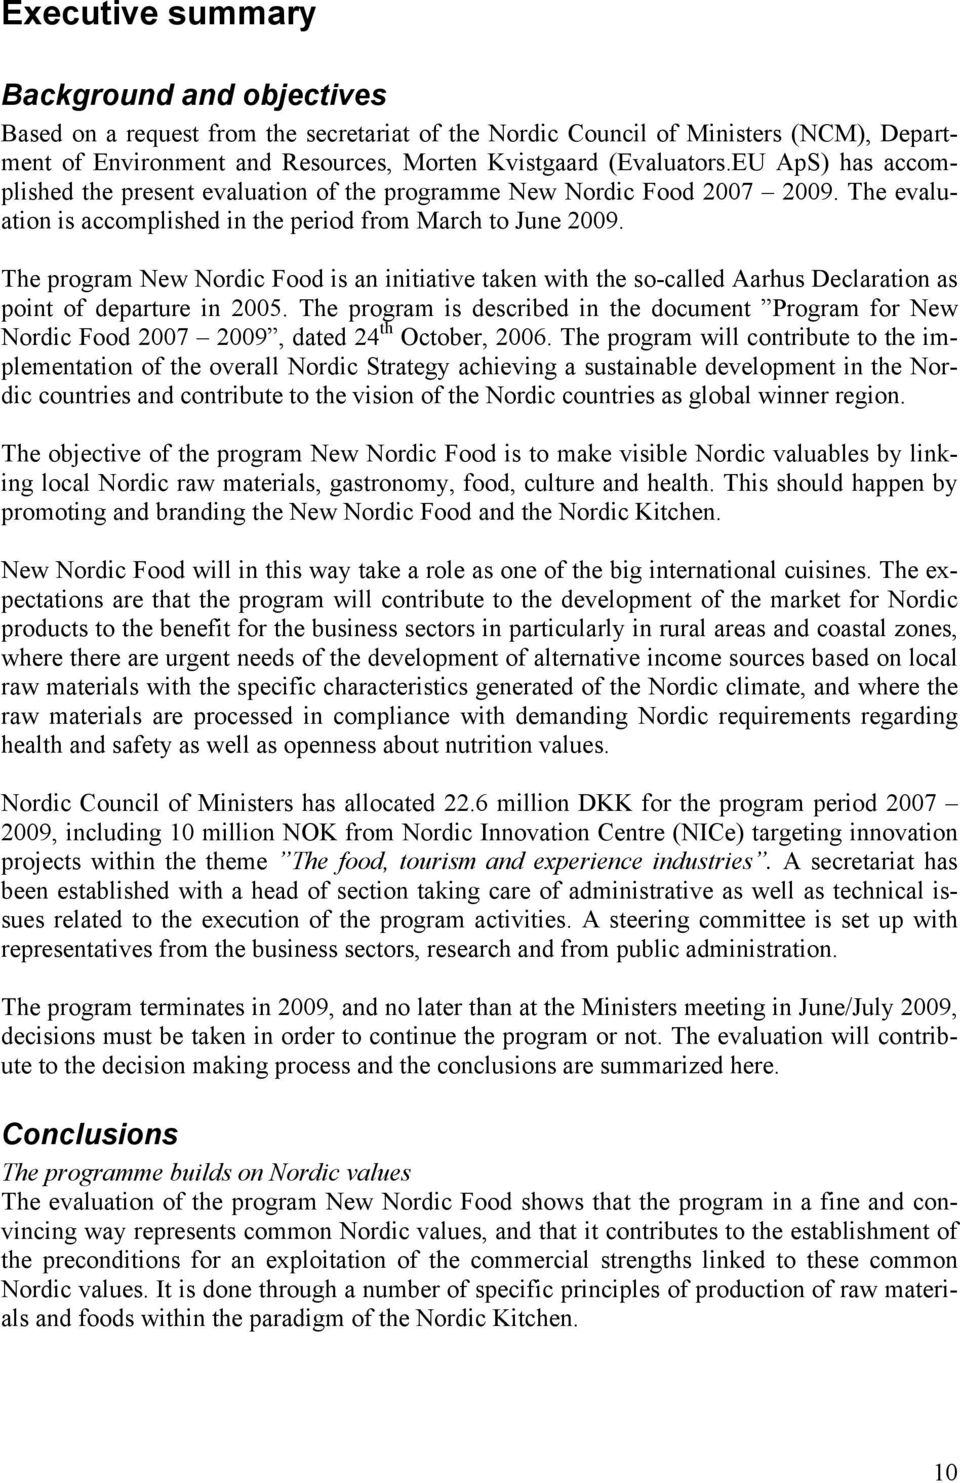 The program New Nordic Food is an initiative taken with the so-called Aarhus Declaration as point of departure in 2005.